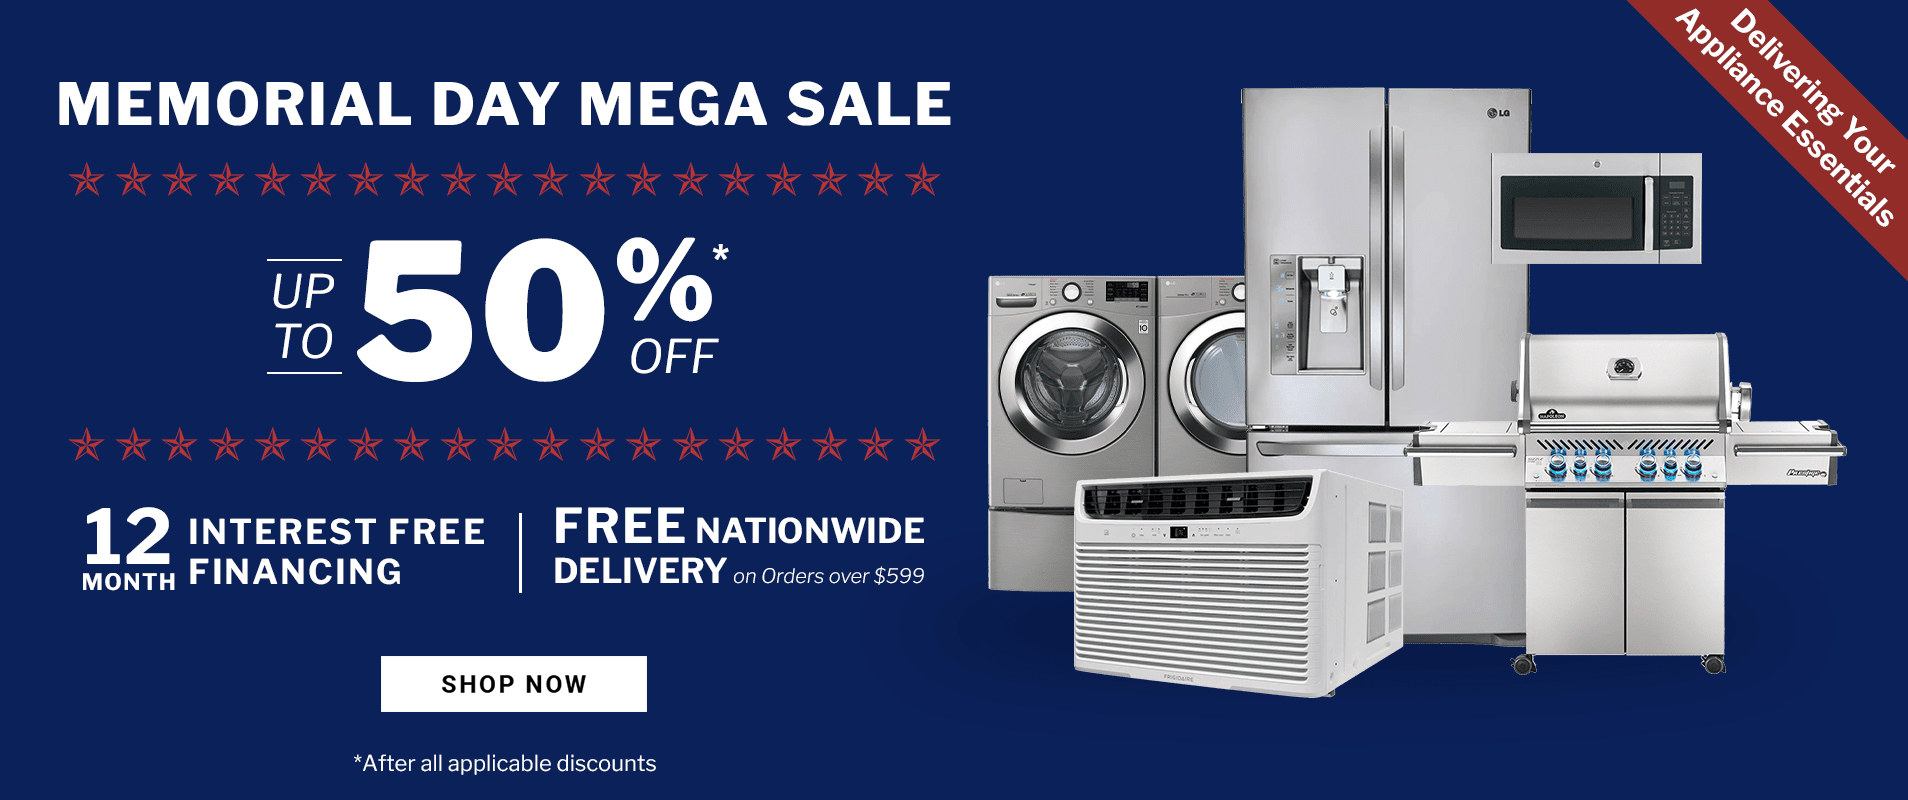 Memorial Day Upto 50% off on Appliance Sale